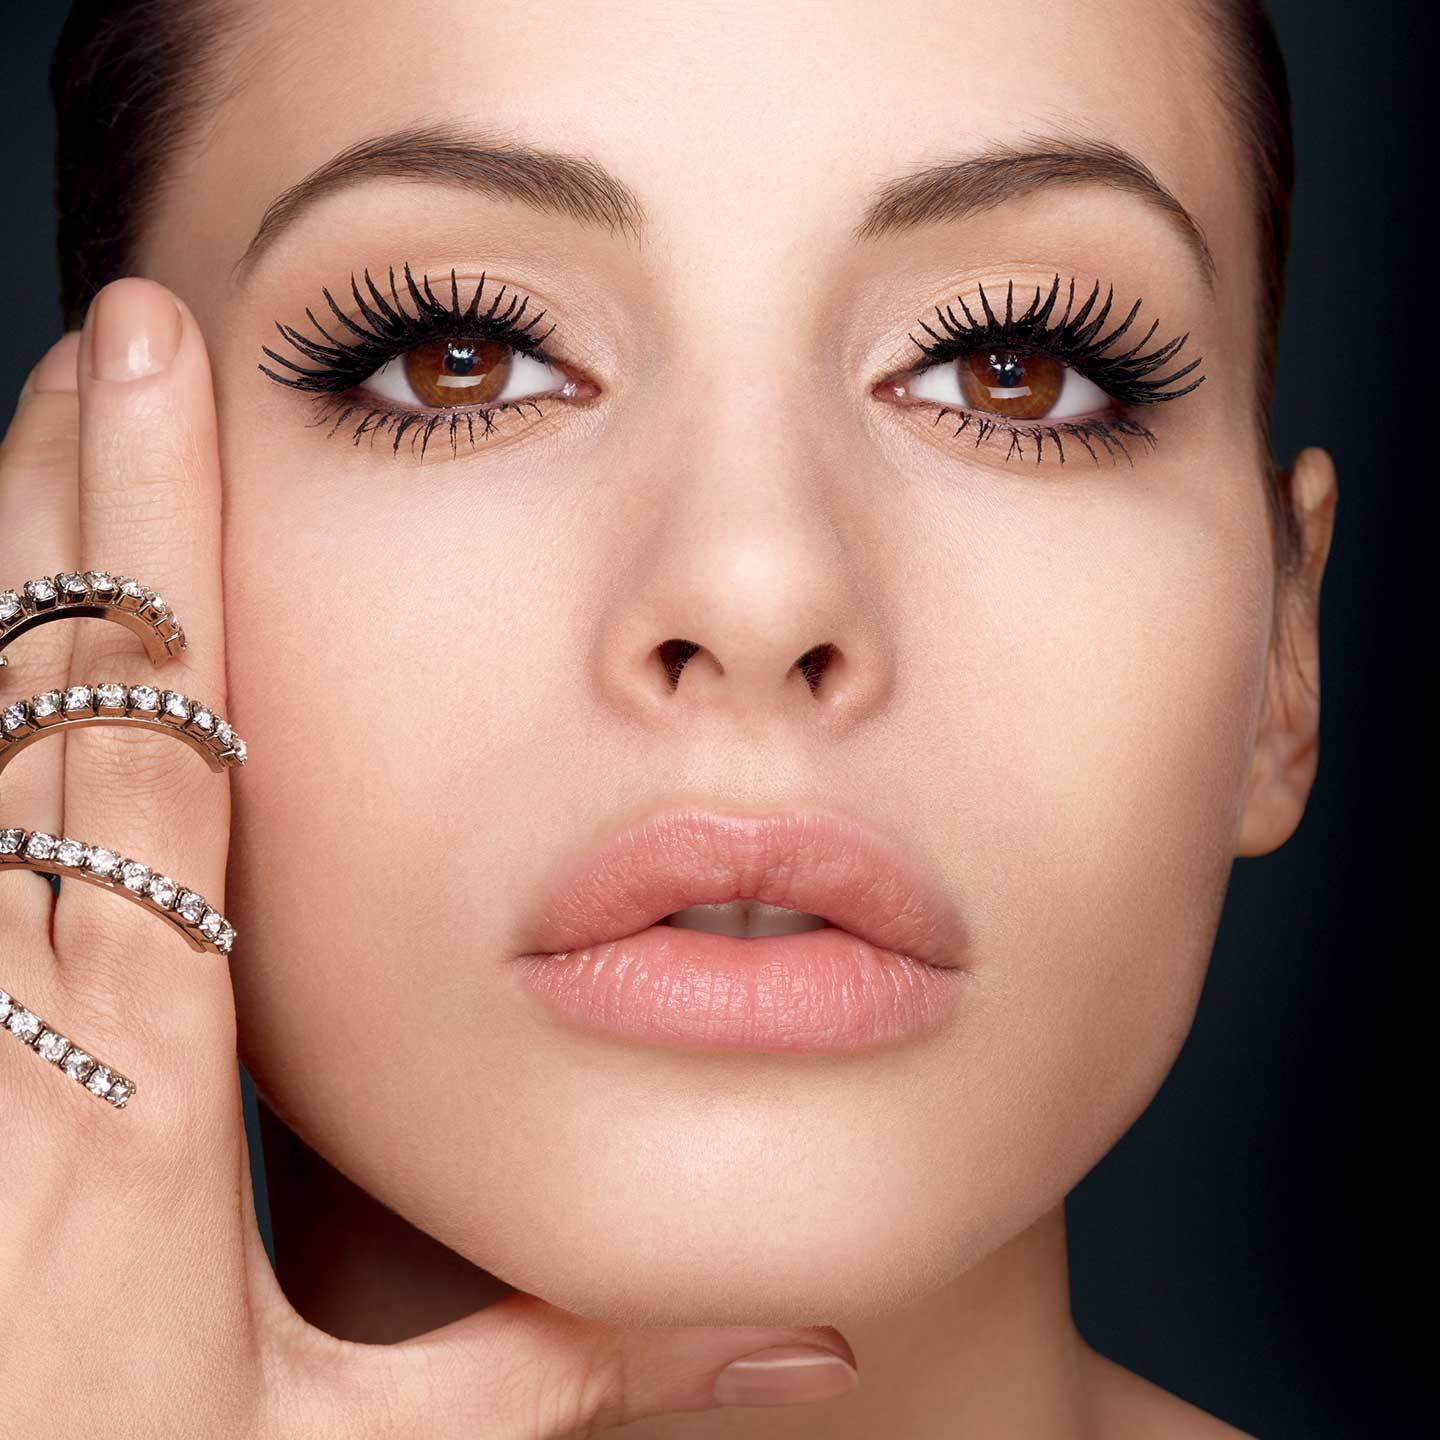 an overview of the mascara in the womens makeup Some of the reasons for women wearing makeup include beauty, confidence and giving a boost to an otherwise wearied appearance a more fundamental reason, however, may be to exaggerate.